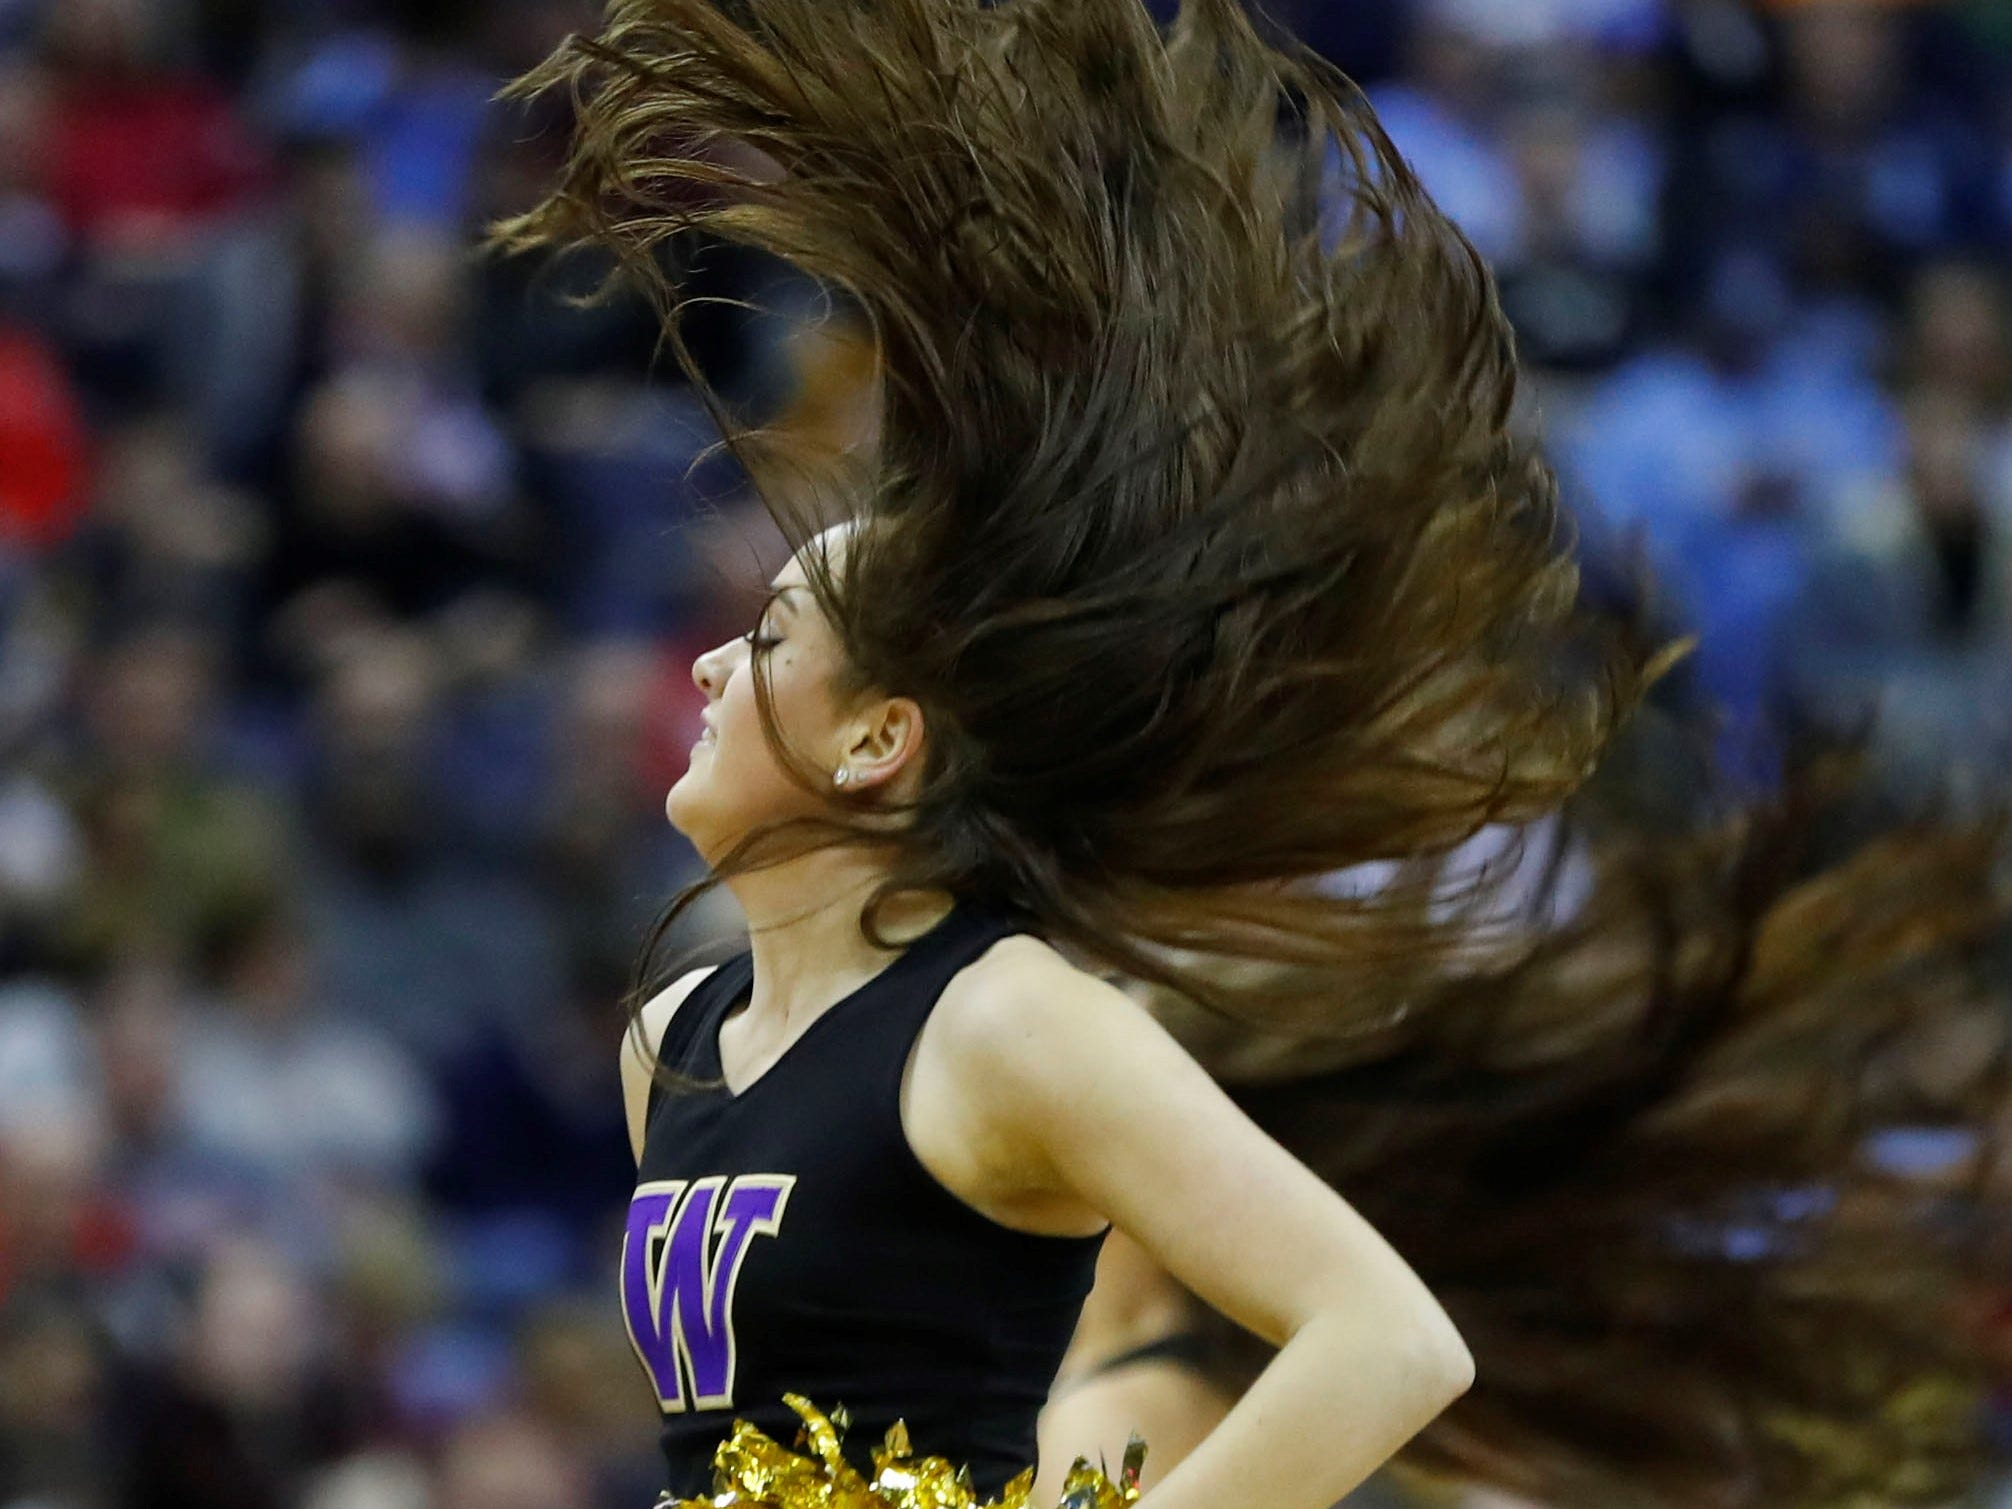 First round: A Washington Huskies cheerleader performs during the game against the Utah State Aggies.